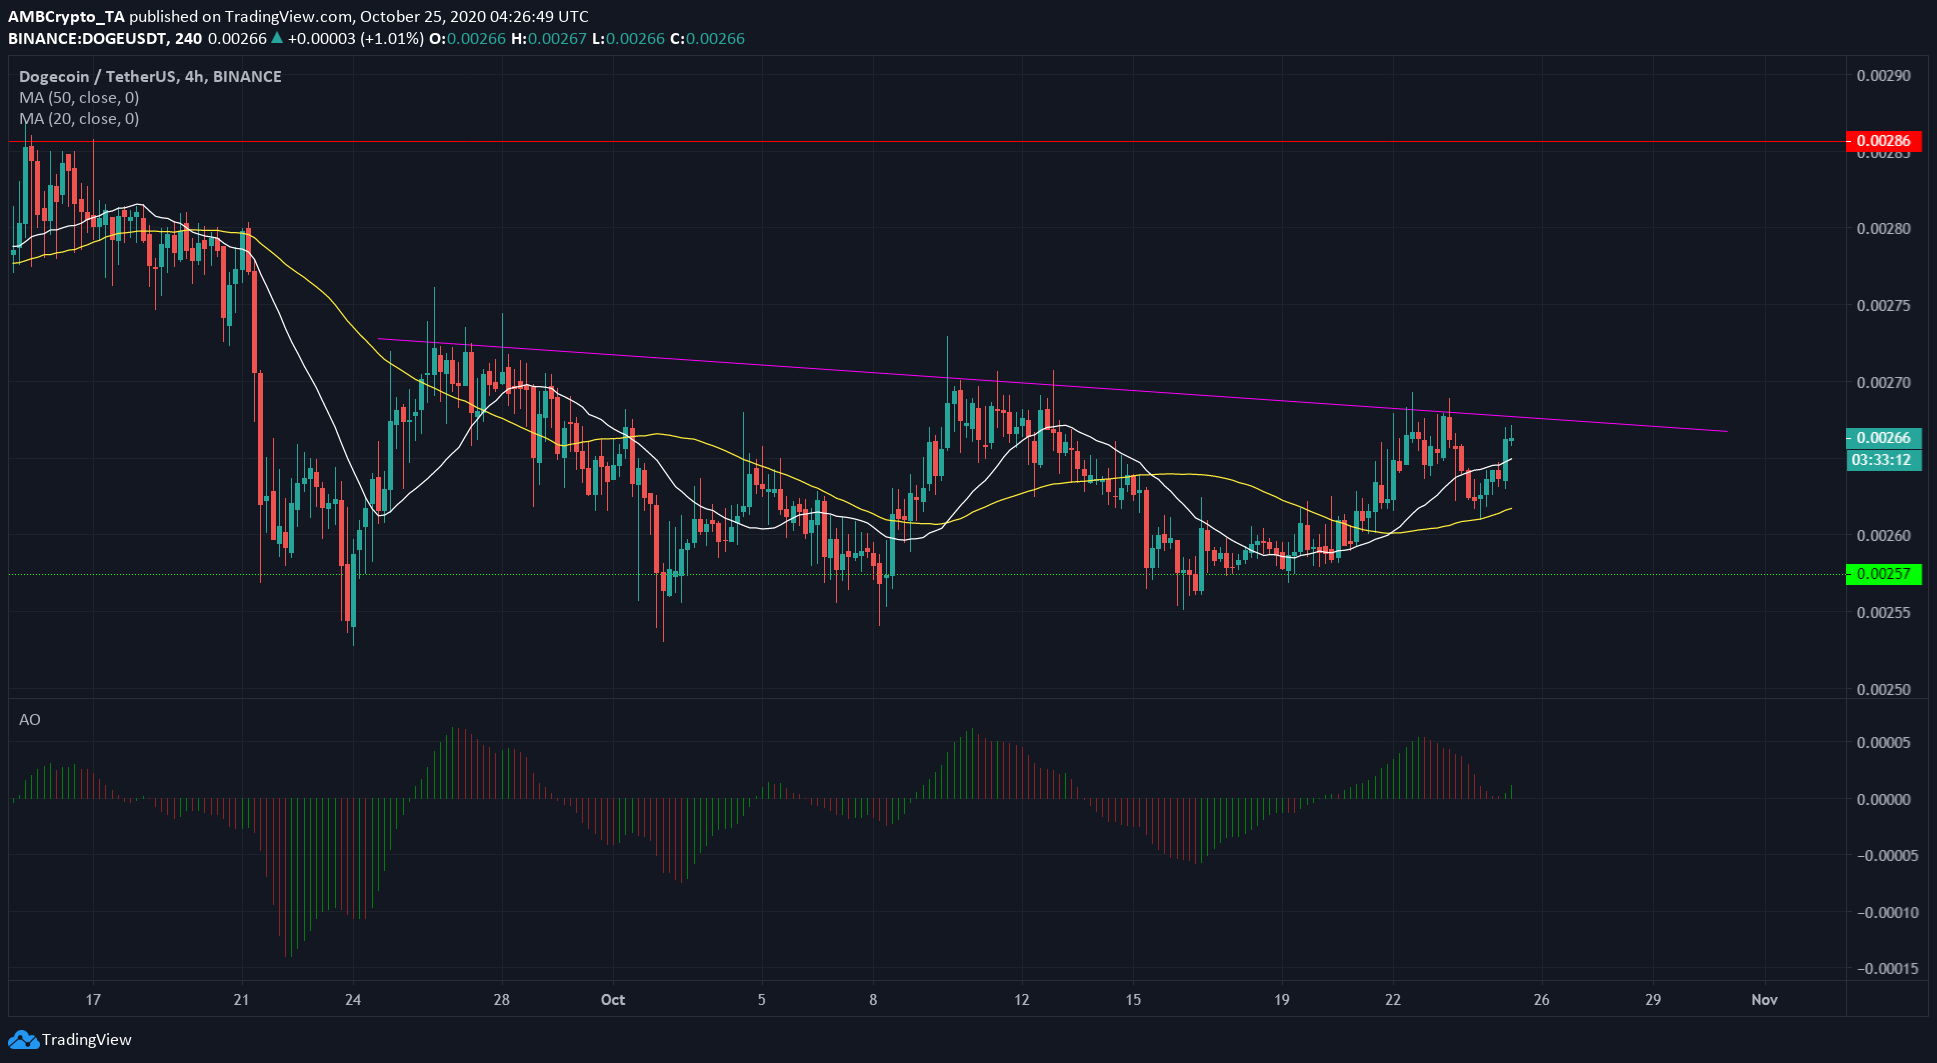 Chainlink, Waves, Dogecoin Price Analysis: 25 October